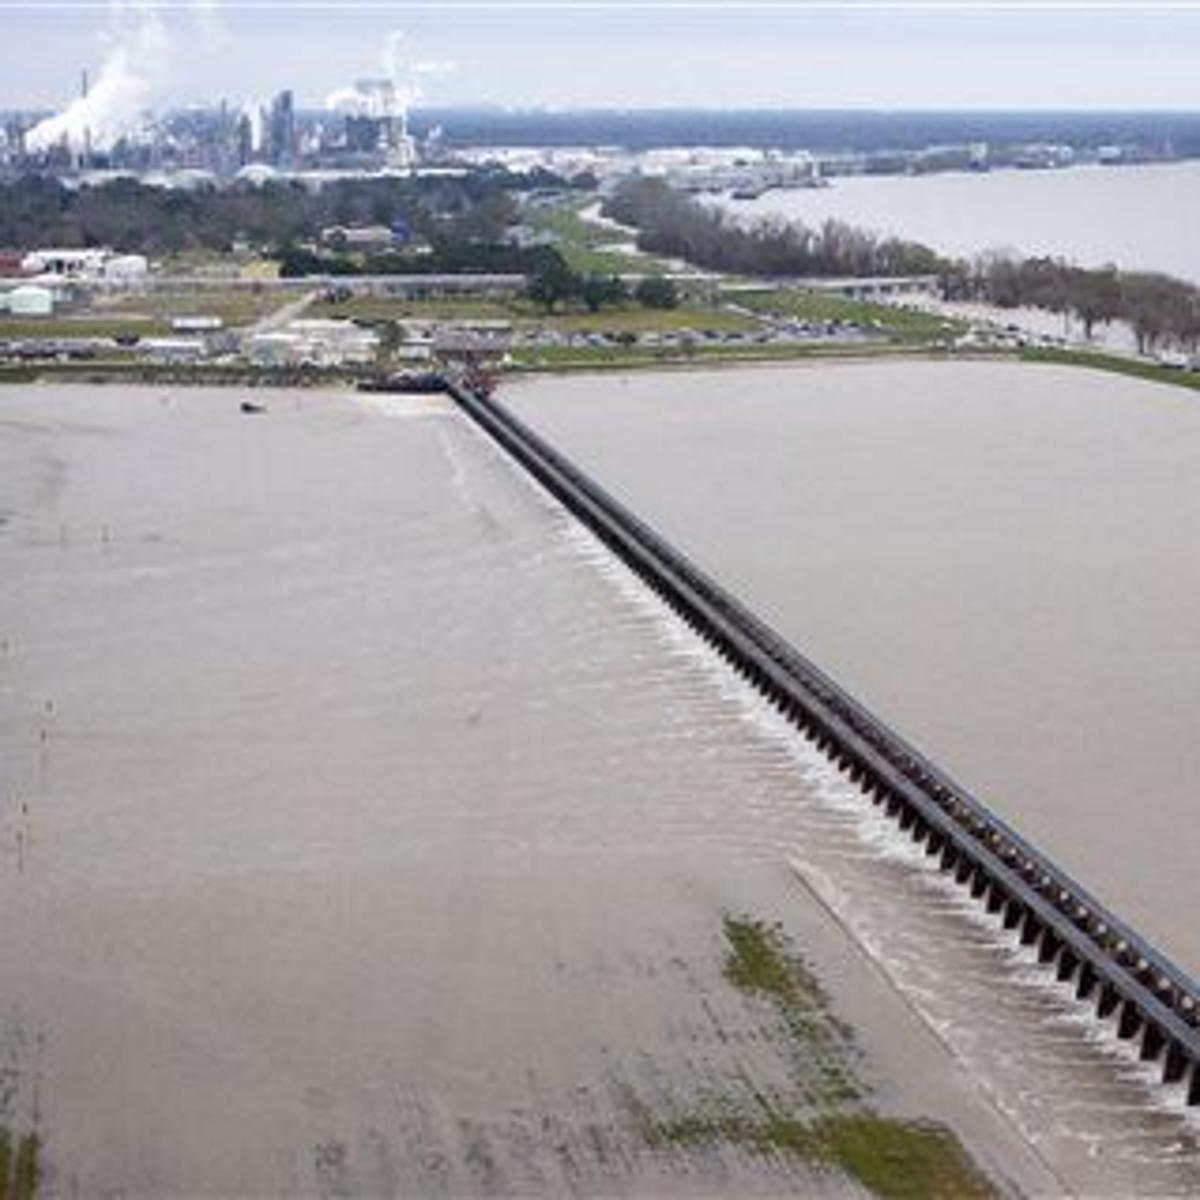 Spillway of swollen Mississippi River open near New Orleans